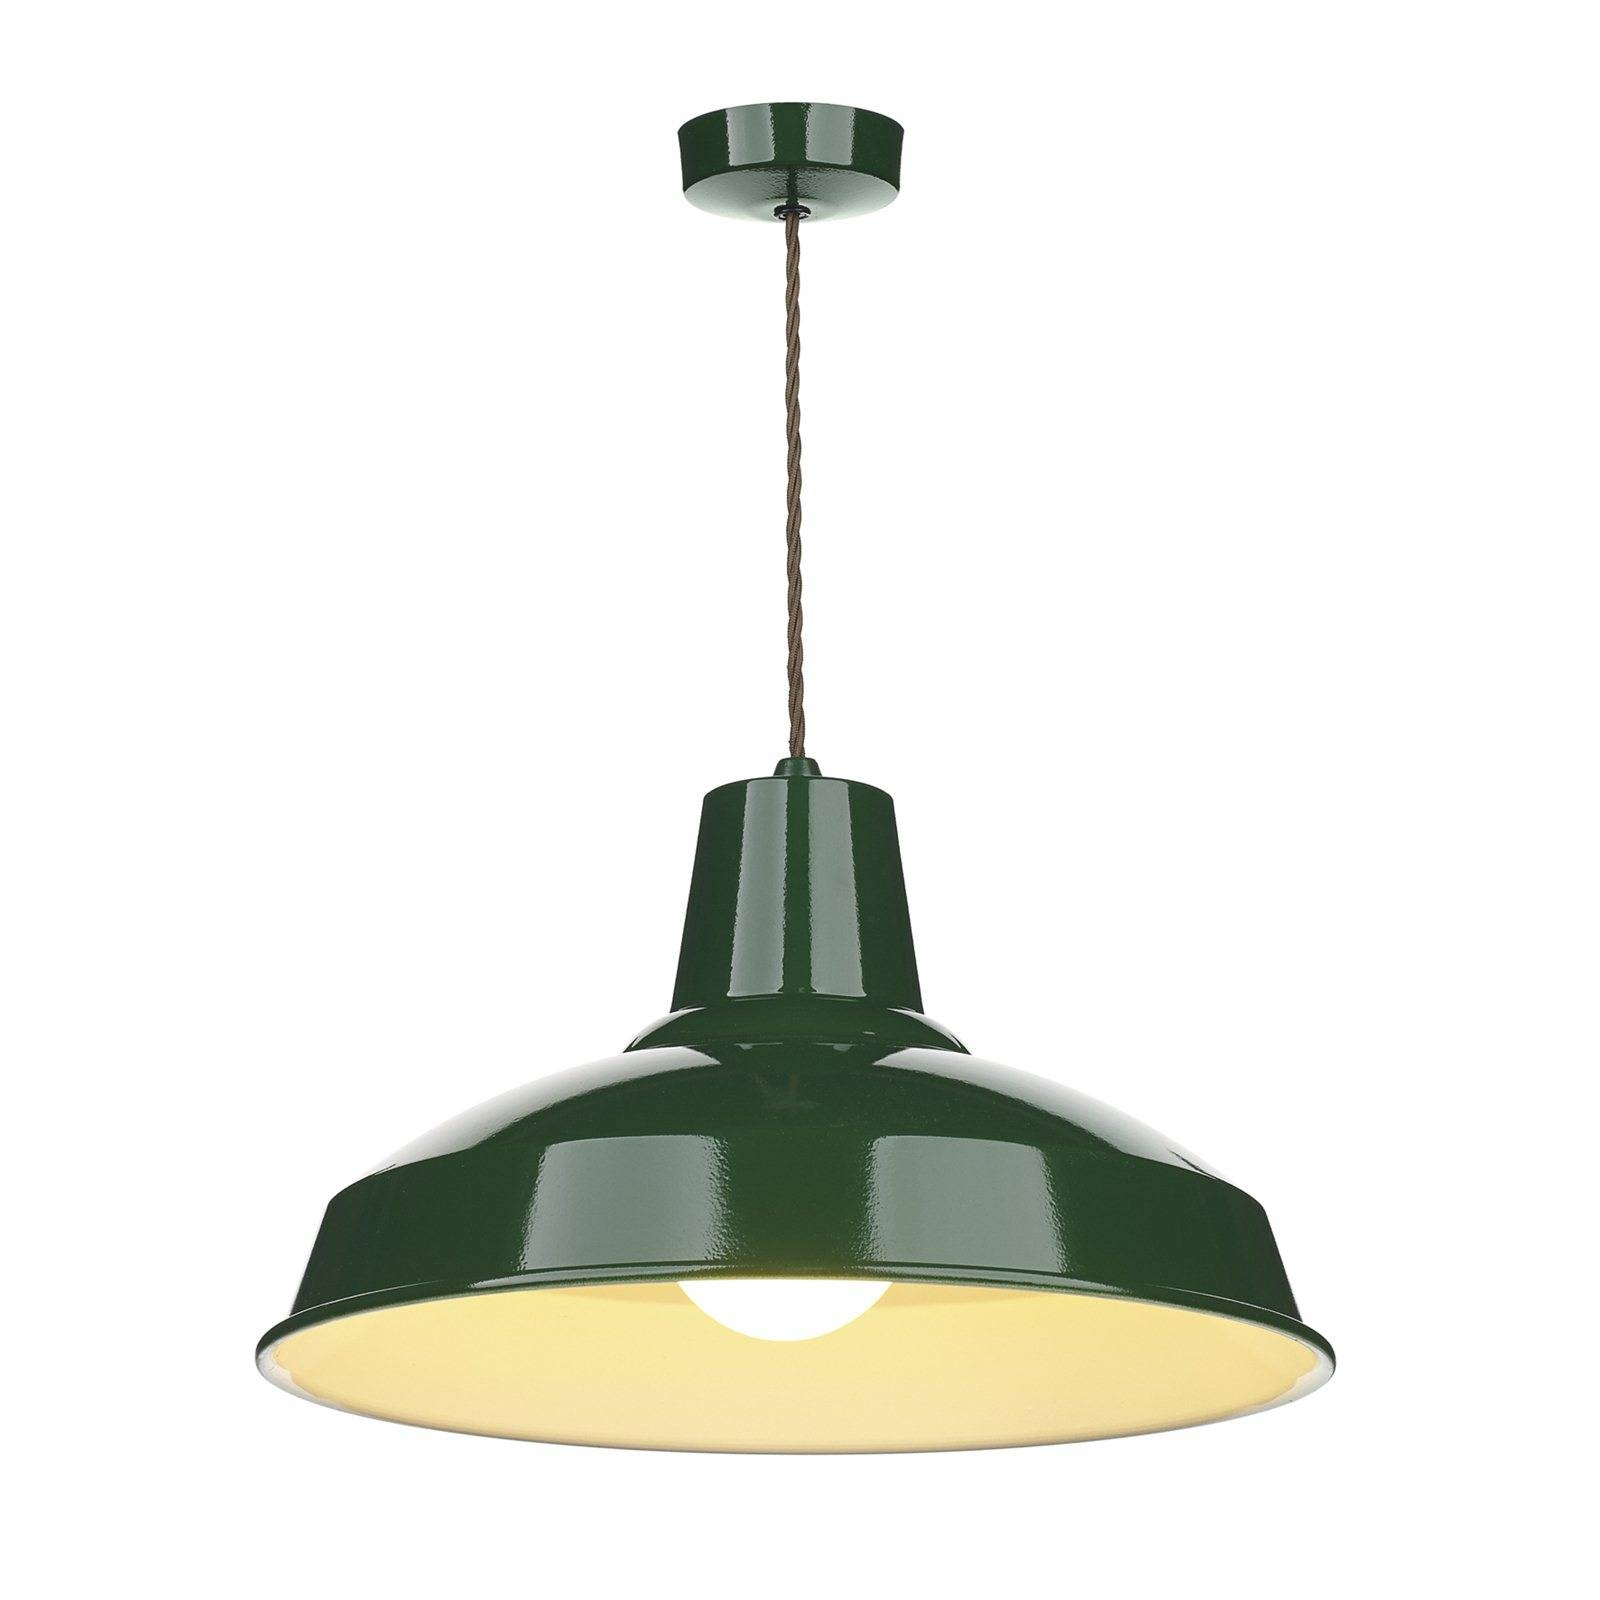 Hicks And Hicks Calstock Pendant Light British Racing Green with regard to Lime Green Pendant Lights (Image 7 of 15)